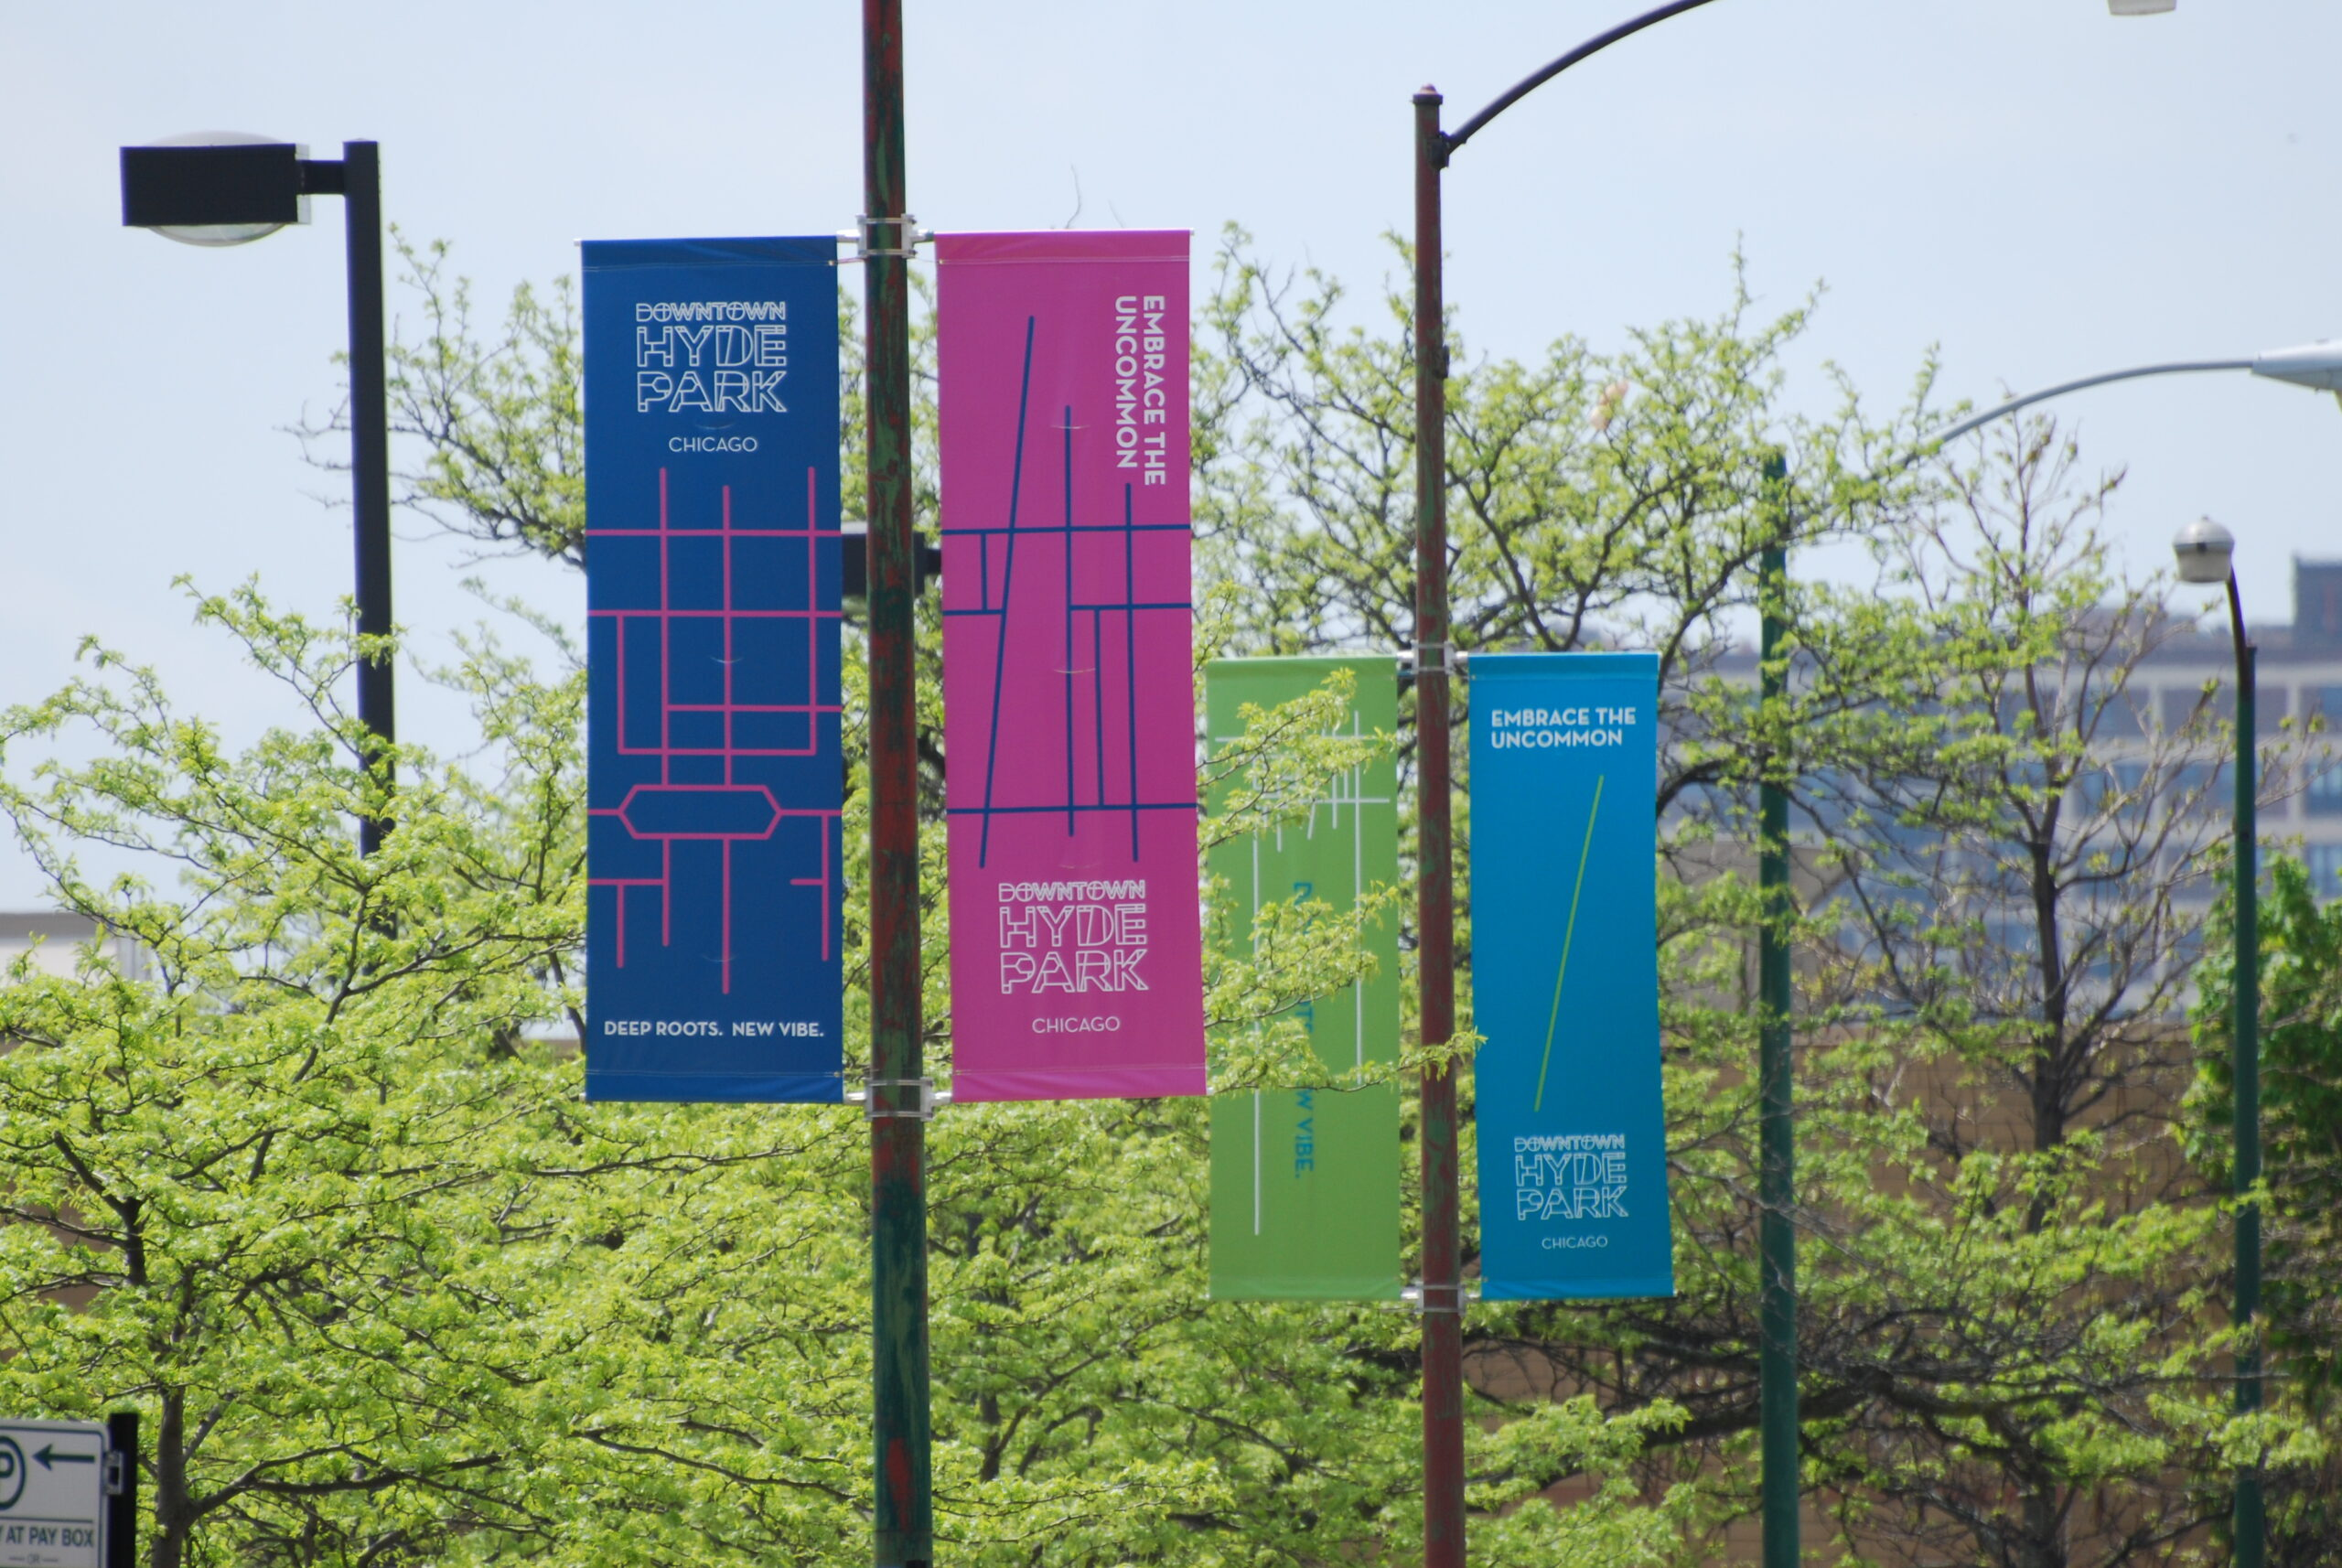 The banners with Downtown Hyde Park's visual identity and branding, lining the lampposts on 57th Street